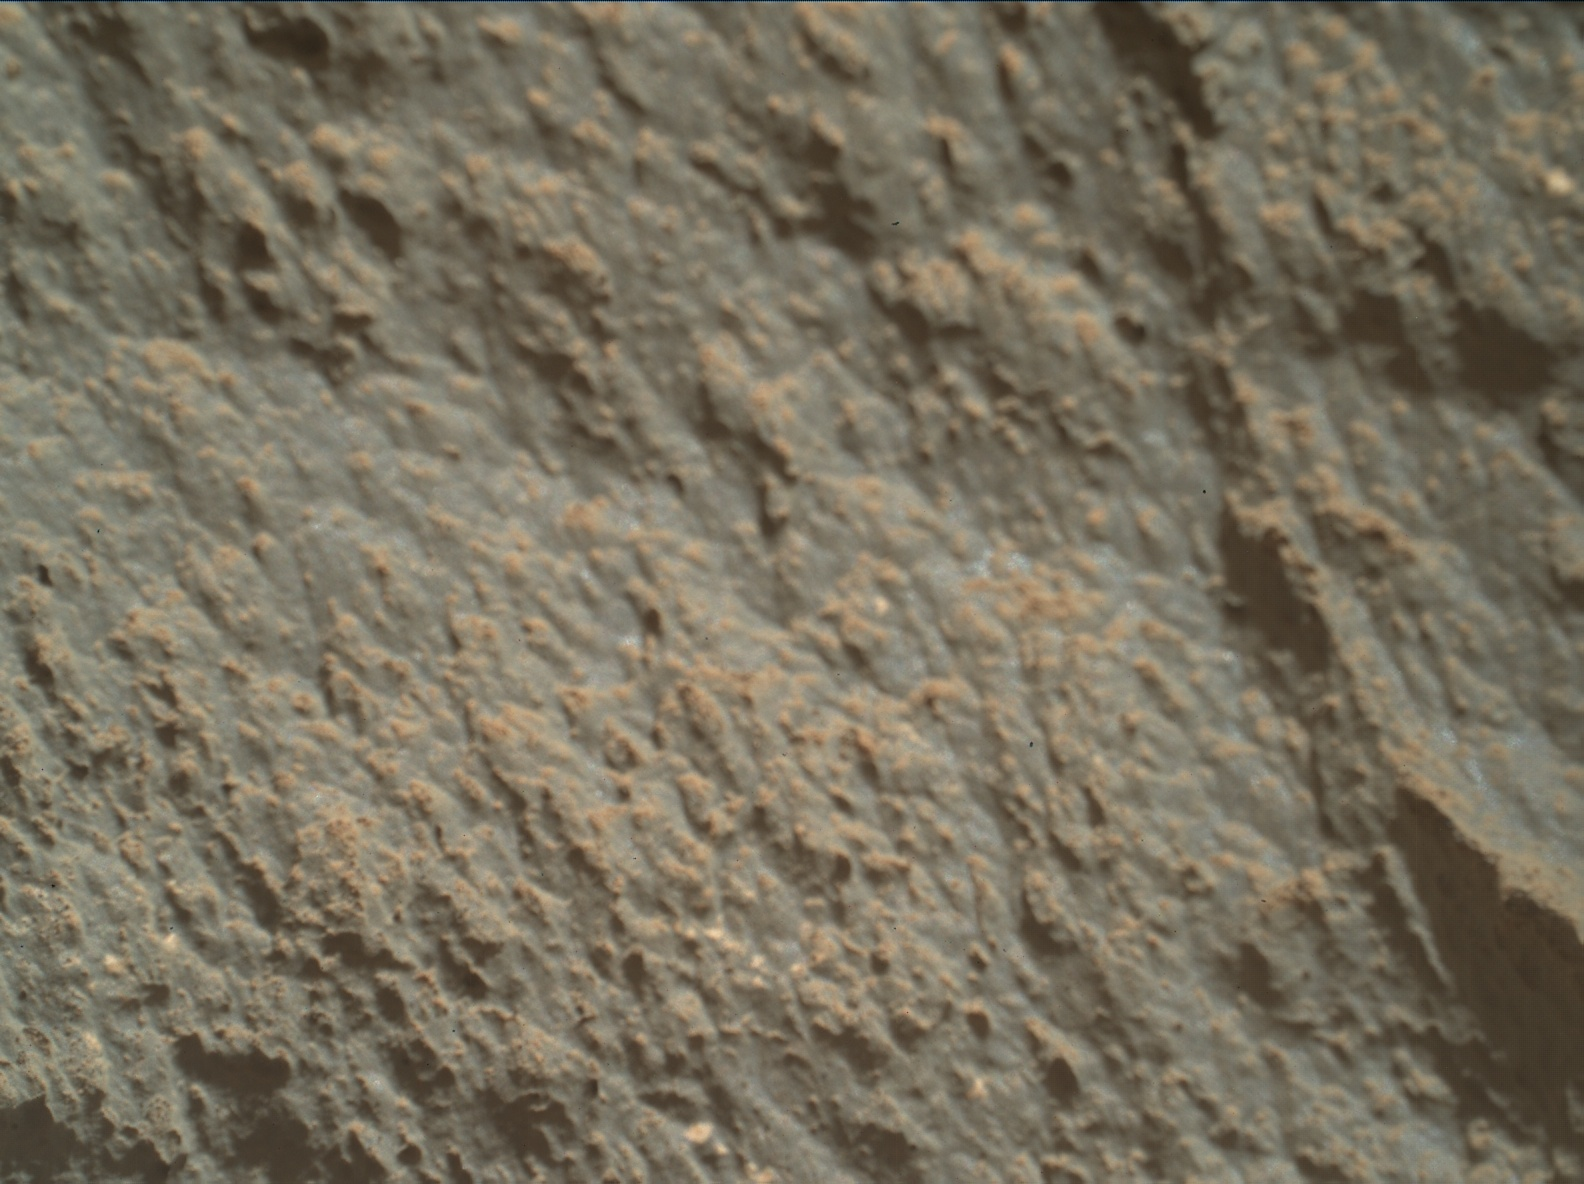 Nasa's Mars rover Curiosity acquired this image using its Mars Hand Lens Imager (MAHLI) on Sol 2632